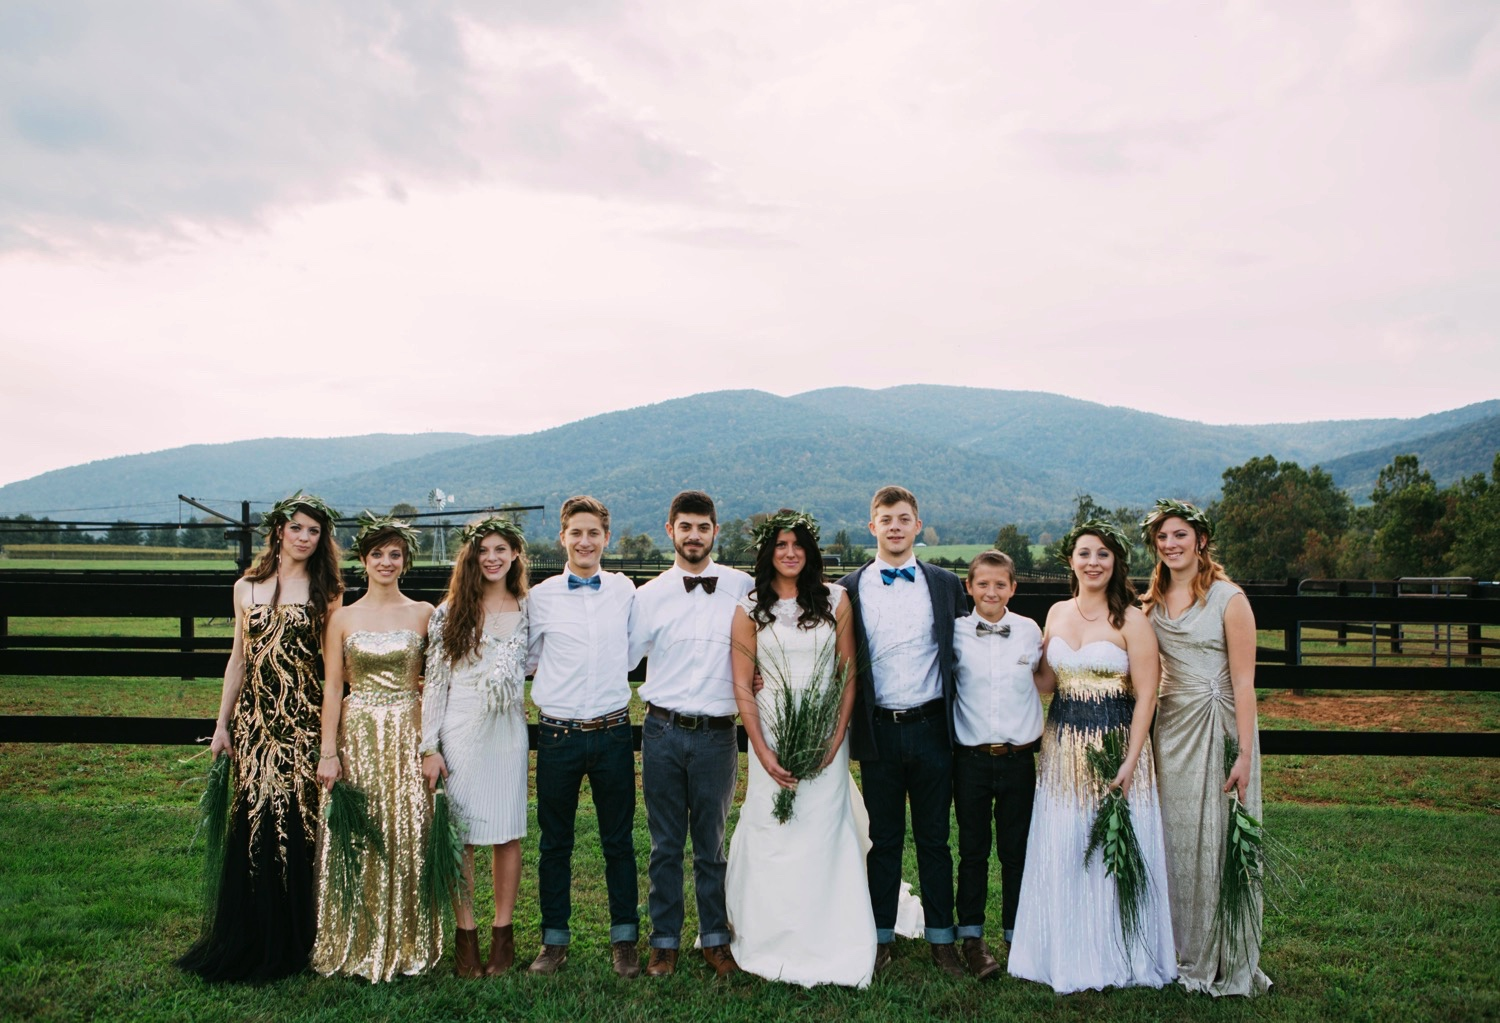 00011_arielandjon_odetooctober_026_gv_ridge_Wedding_blue_mismatched_dresses_october_flowers_parkway_mountains_crozet_king_photography_gianvaldiviaphoto_valdivia_bride_faded_family_gian_fall_virginia_bridesmaid_photographer_vineyard_poppy_florals.jpg